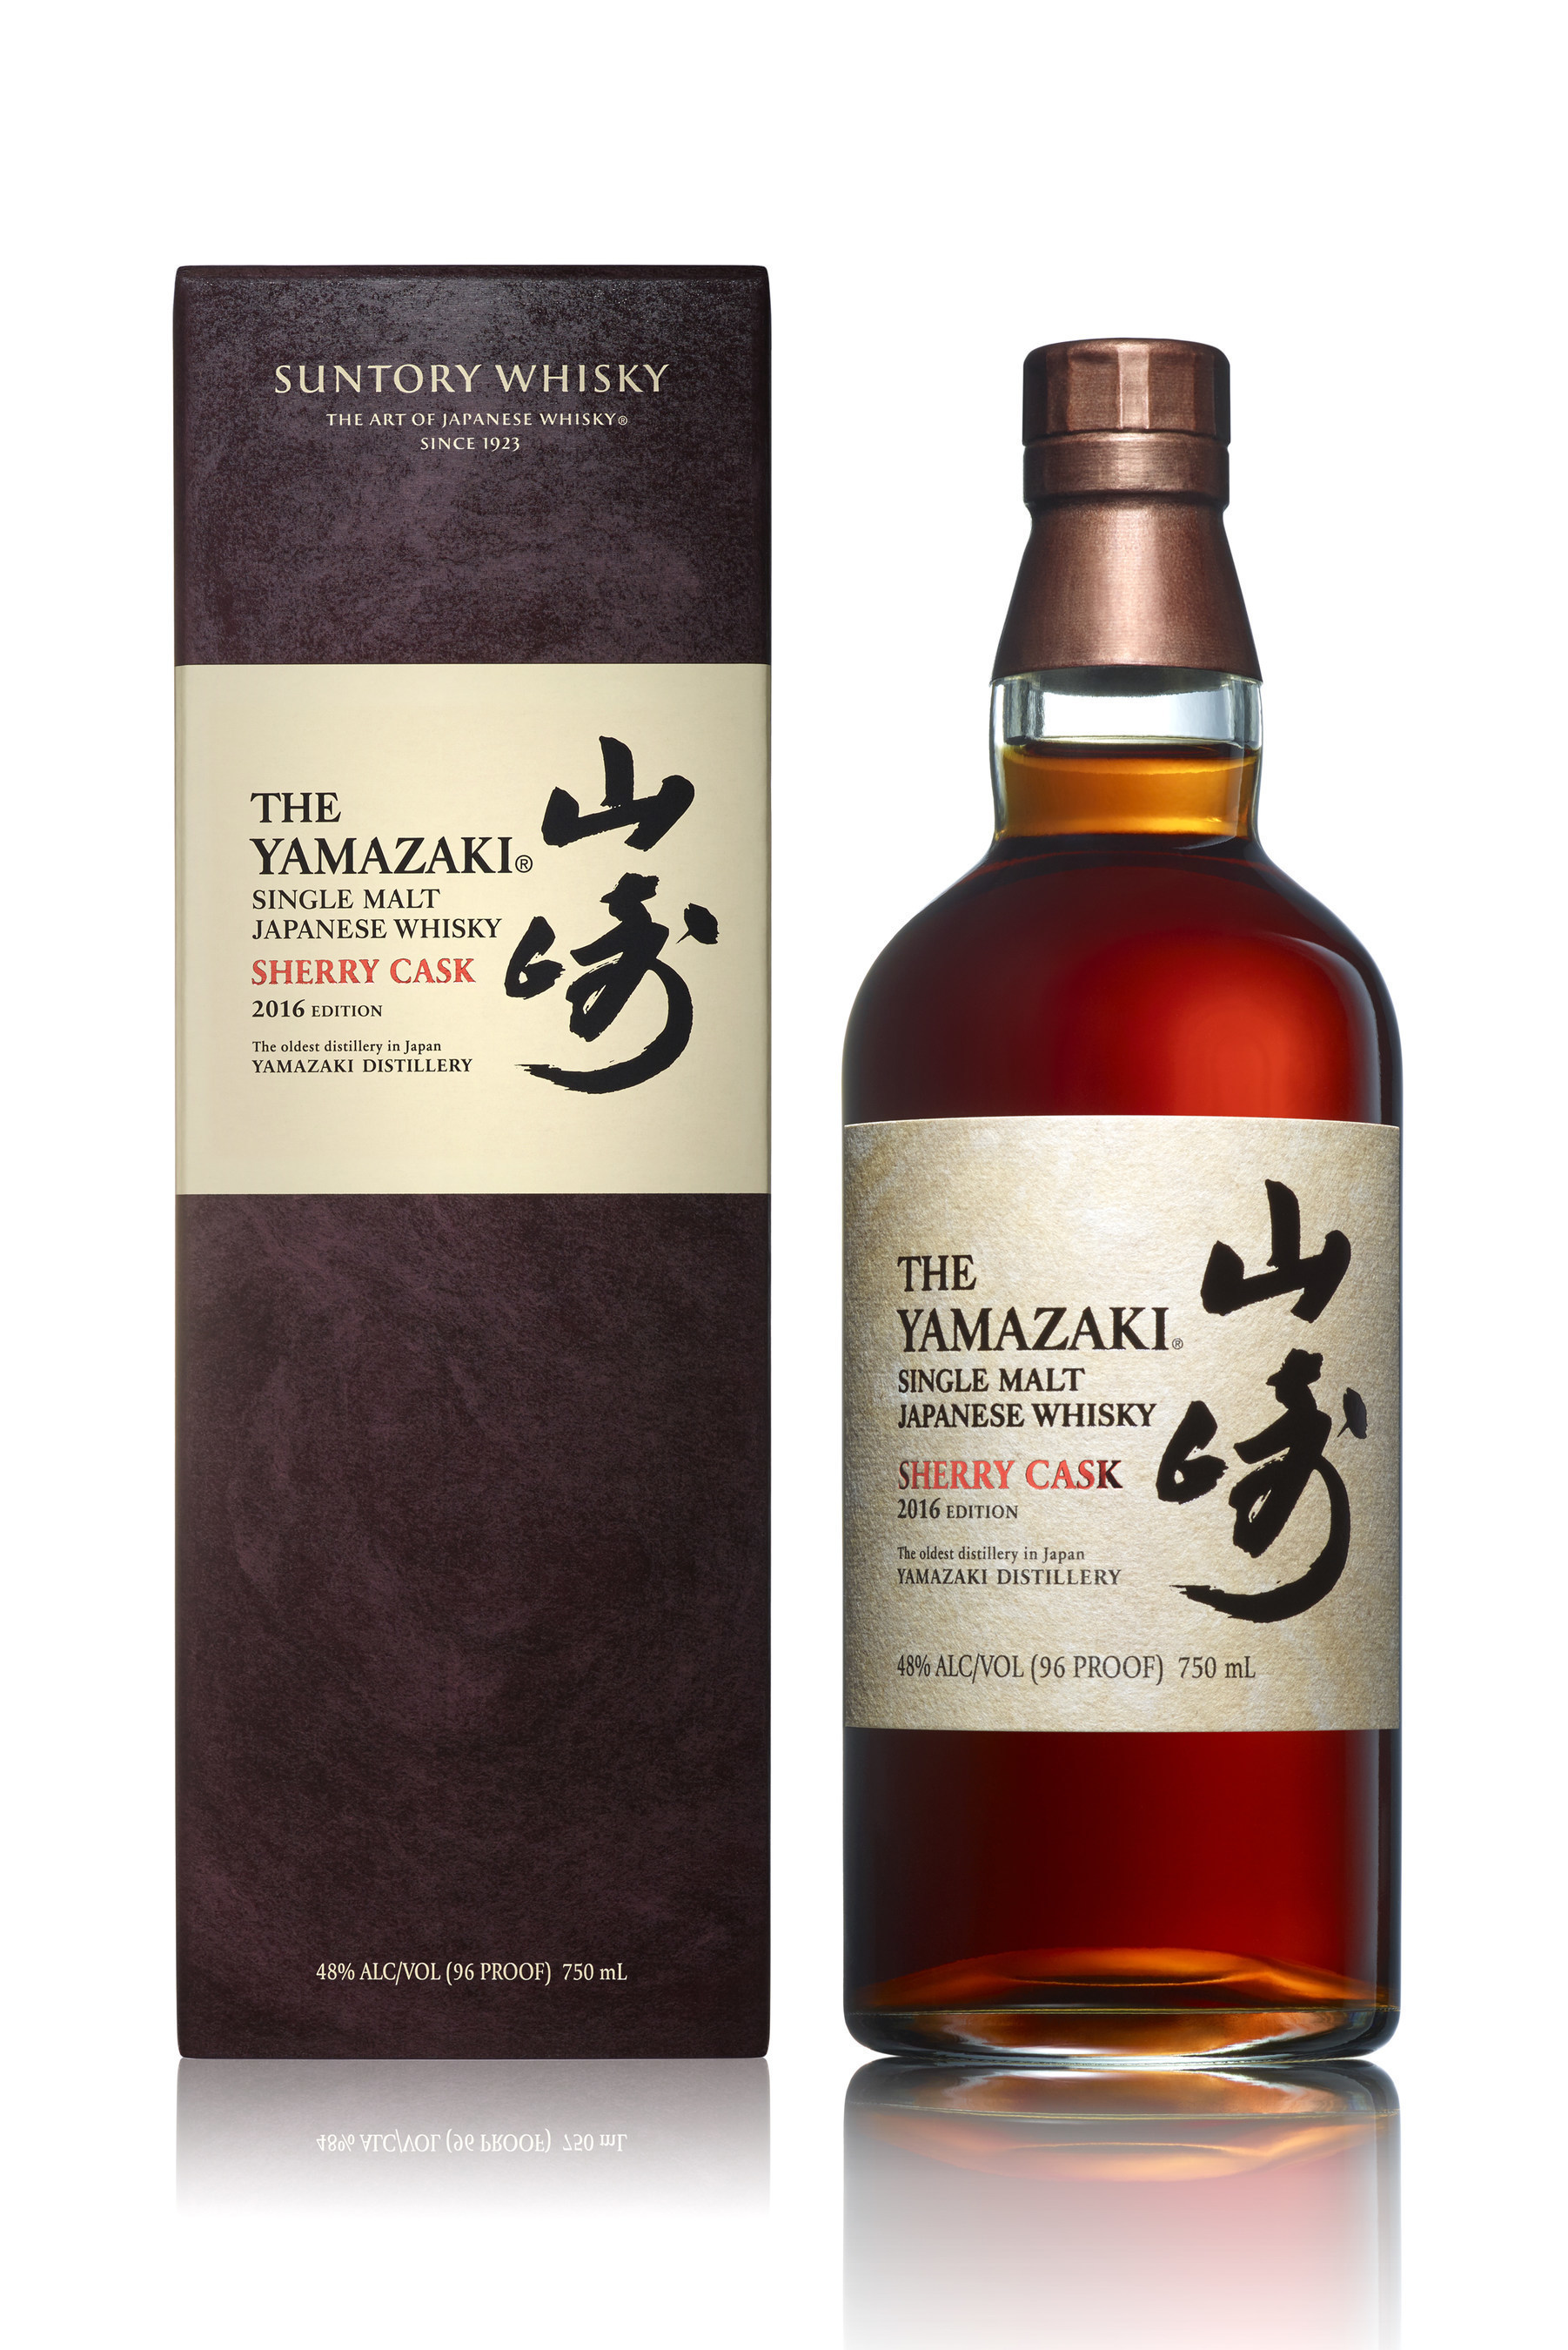 The House of Suntory announces the global introduction of Yamazaki Sherry Cask 2016. Photo credit: Benjamin Henon @ Eyemade.